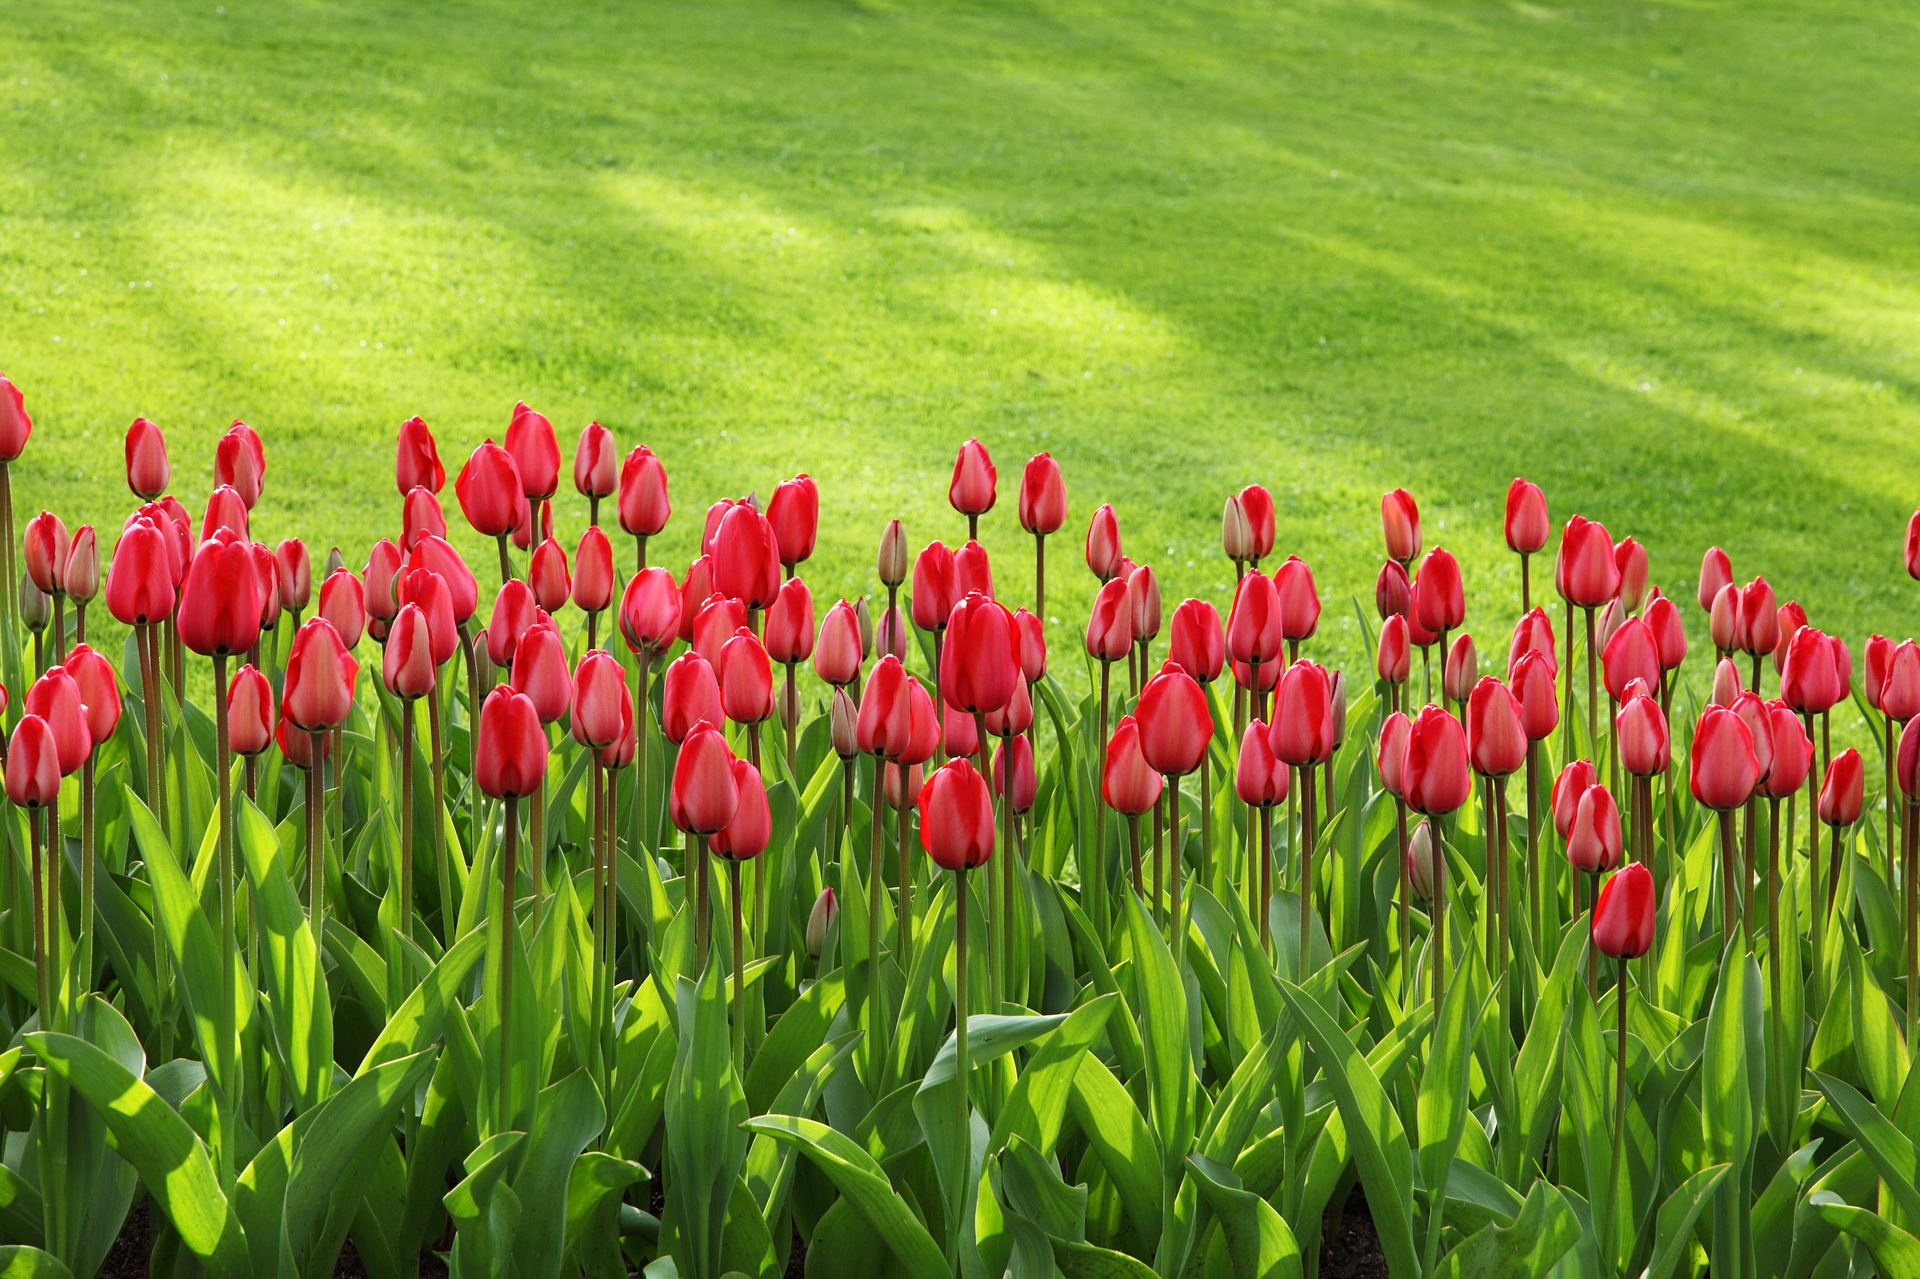 tulips in a well-maintained garden